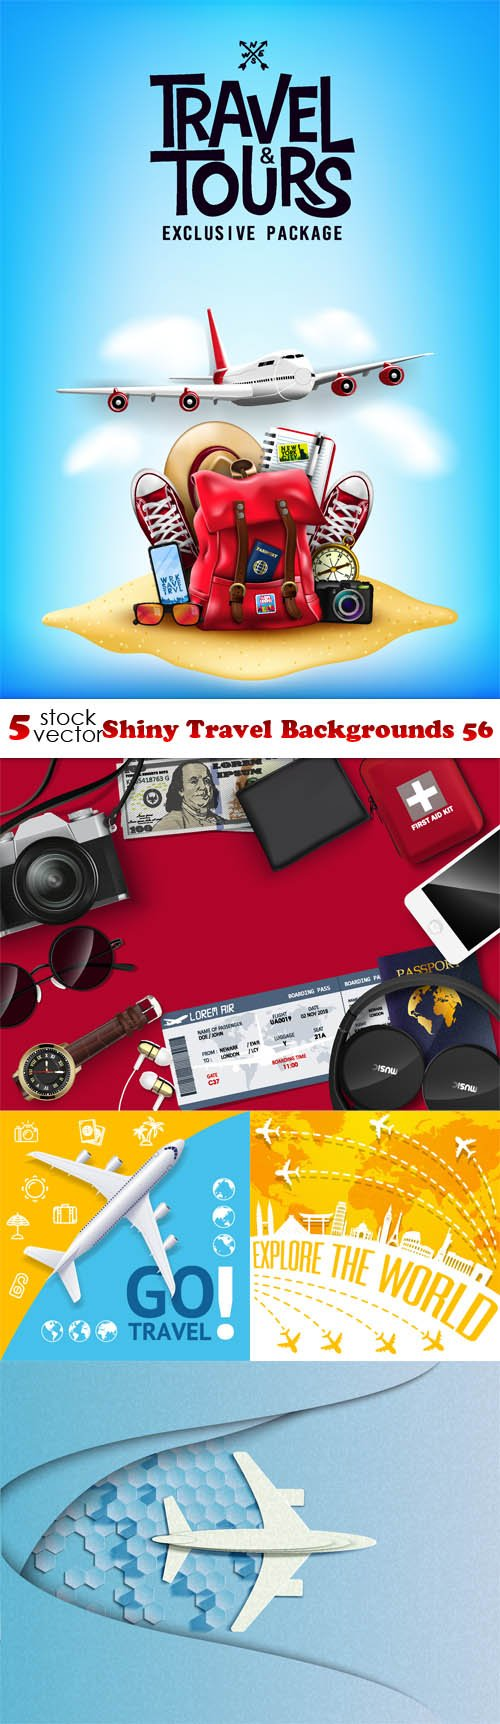 Vectors - Shiny Travel Backgrounds 56